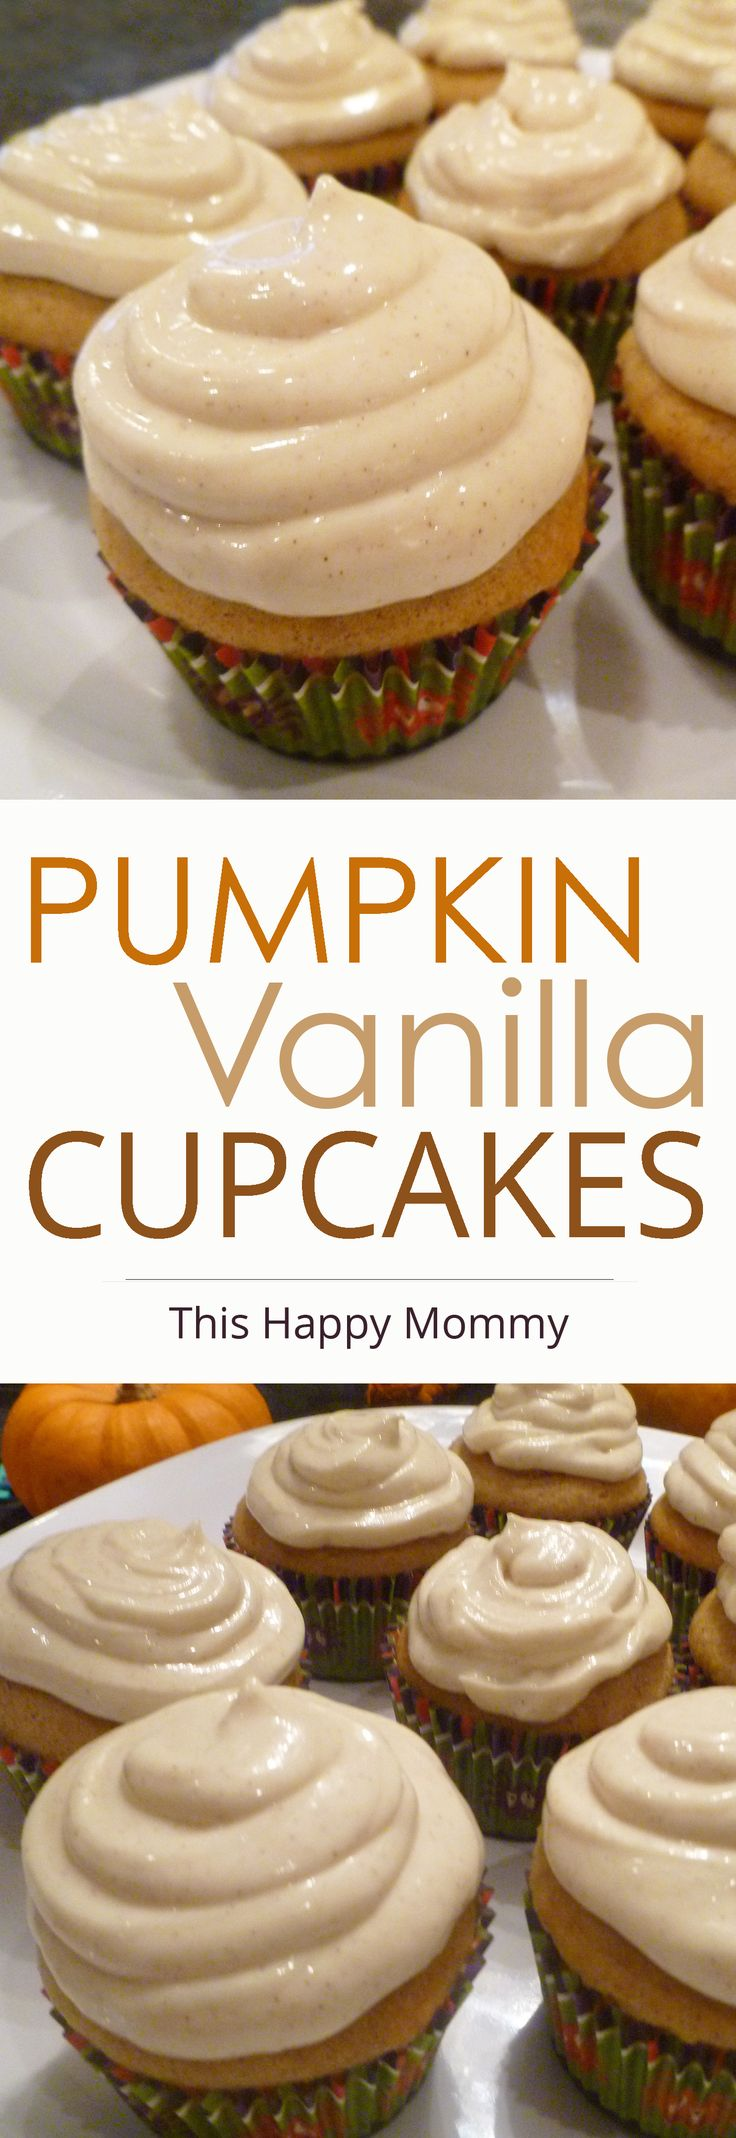 Pumpkin Vanilla Cupcakes -- Yummy cupcakes filled with pumpkin, vanilla, and topped with cinnamon vanilla cream cheese frosting. | thishappymommy.com